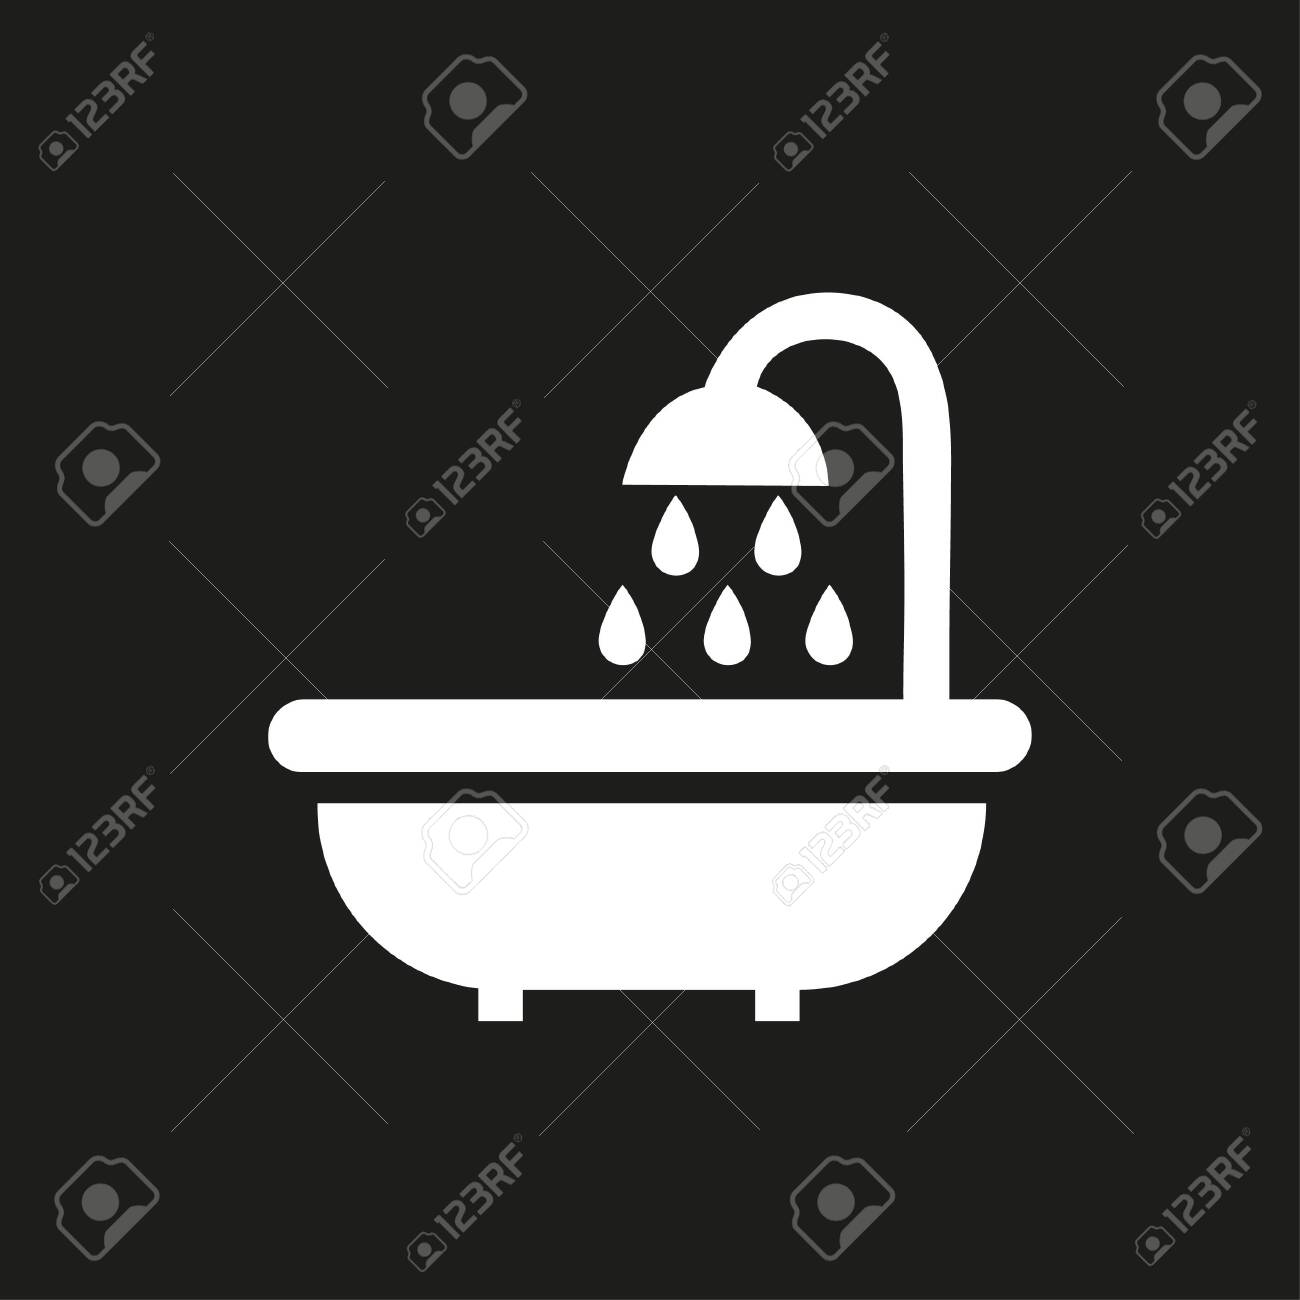 Bathroom icon with shower - 140316433